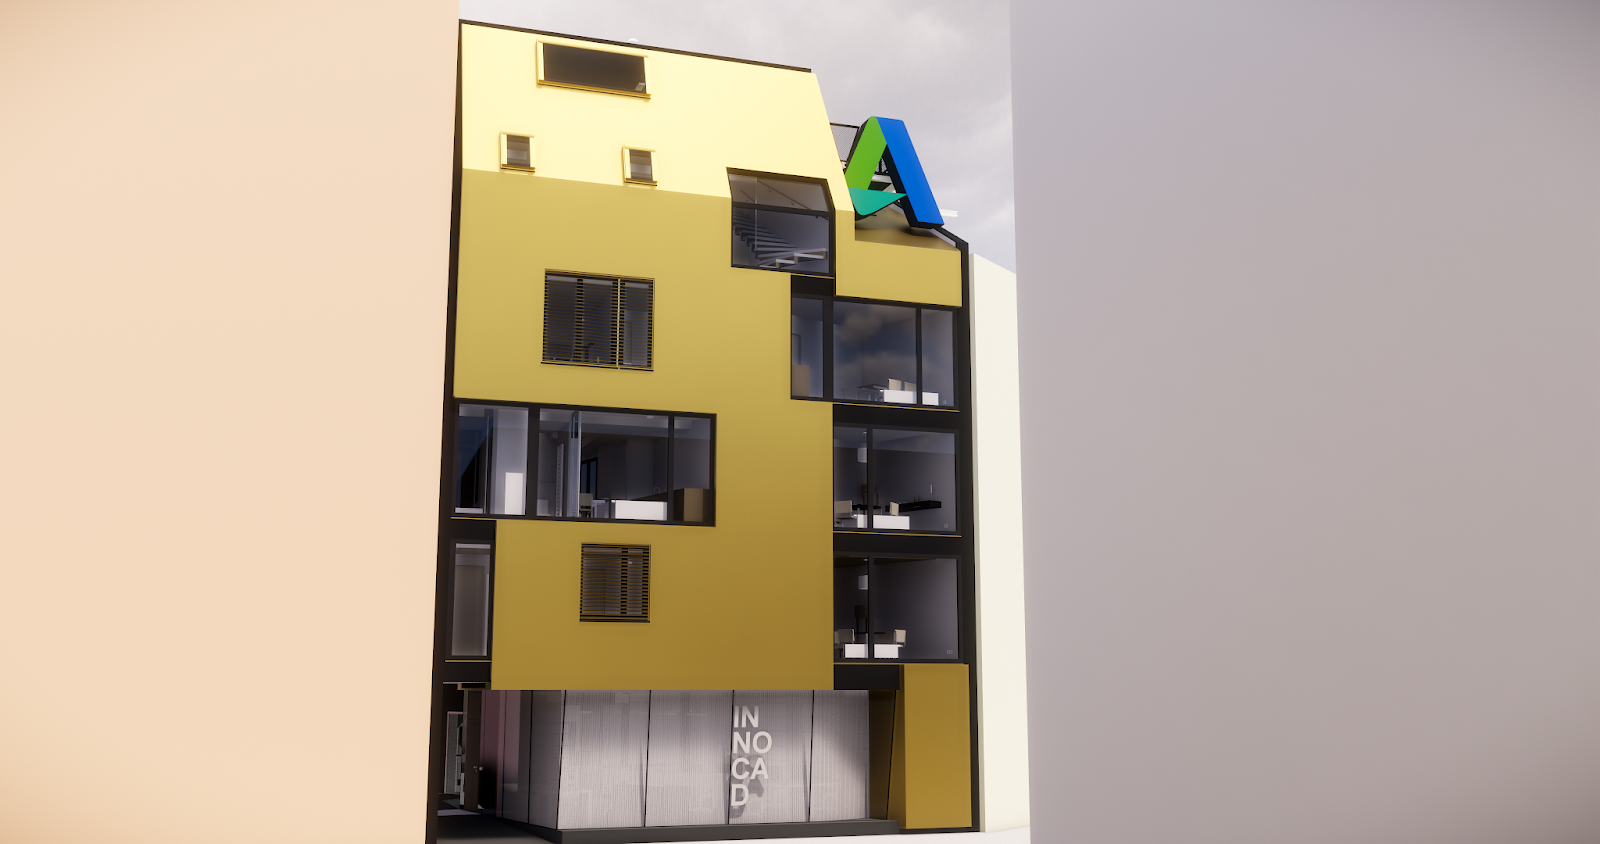 BIM Chapters: A Golden Nugget - The New German-based Sample